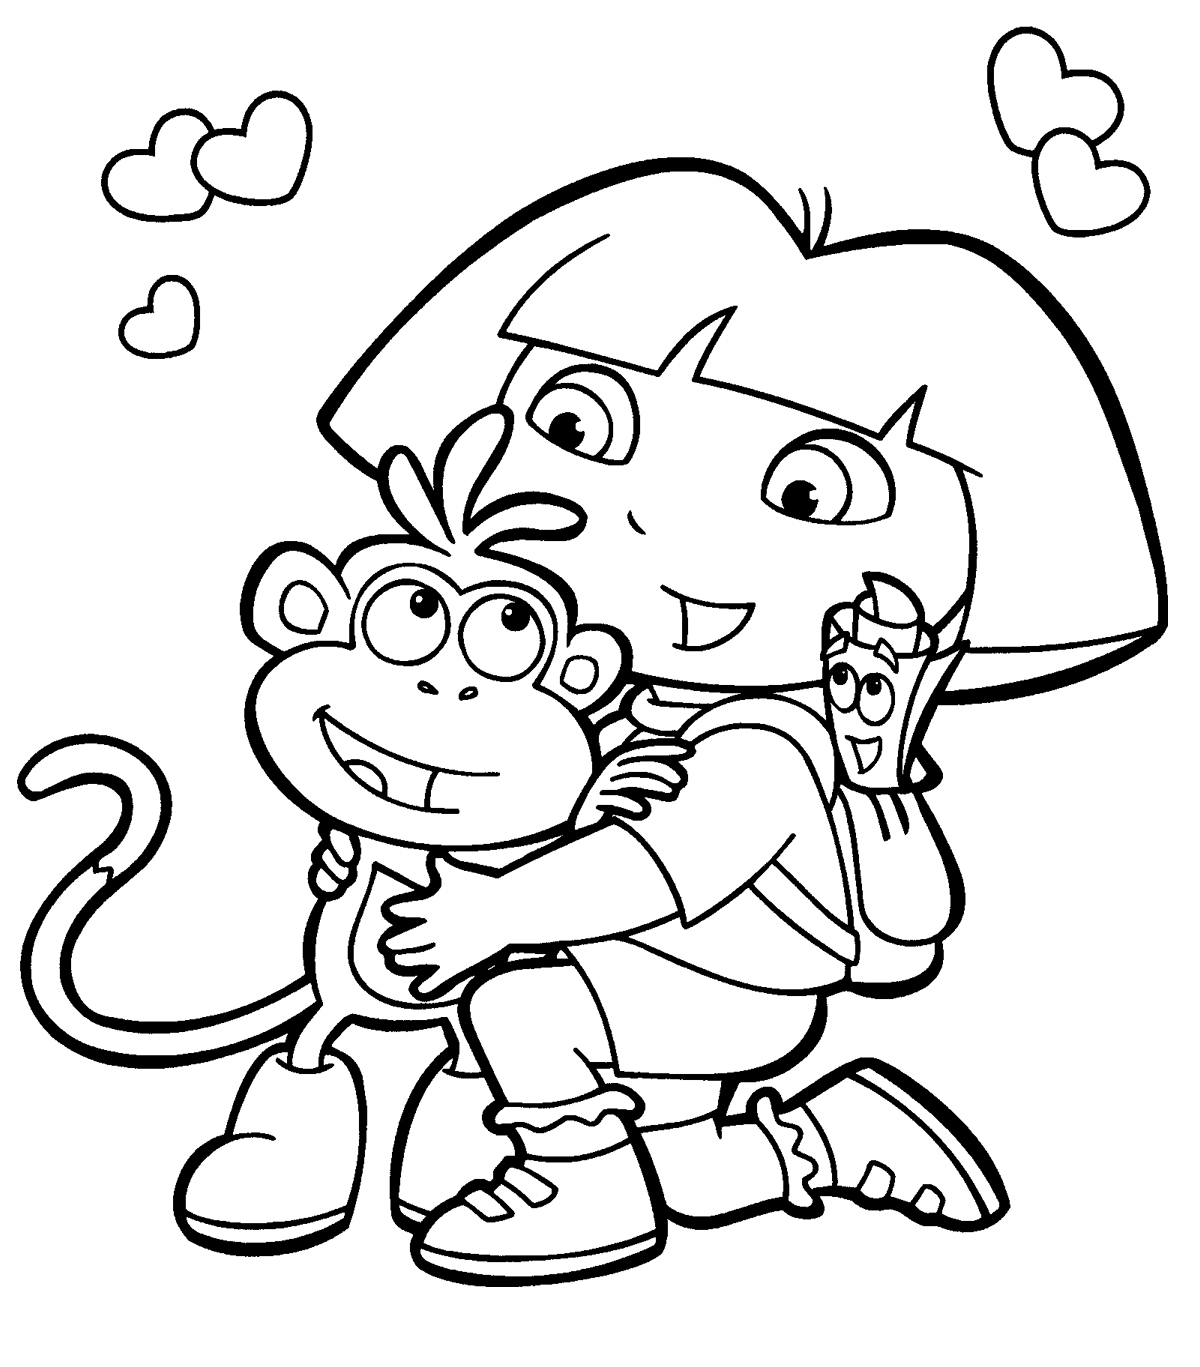 Download Dora The Explorer Coloring Pages 15 Print